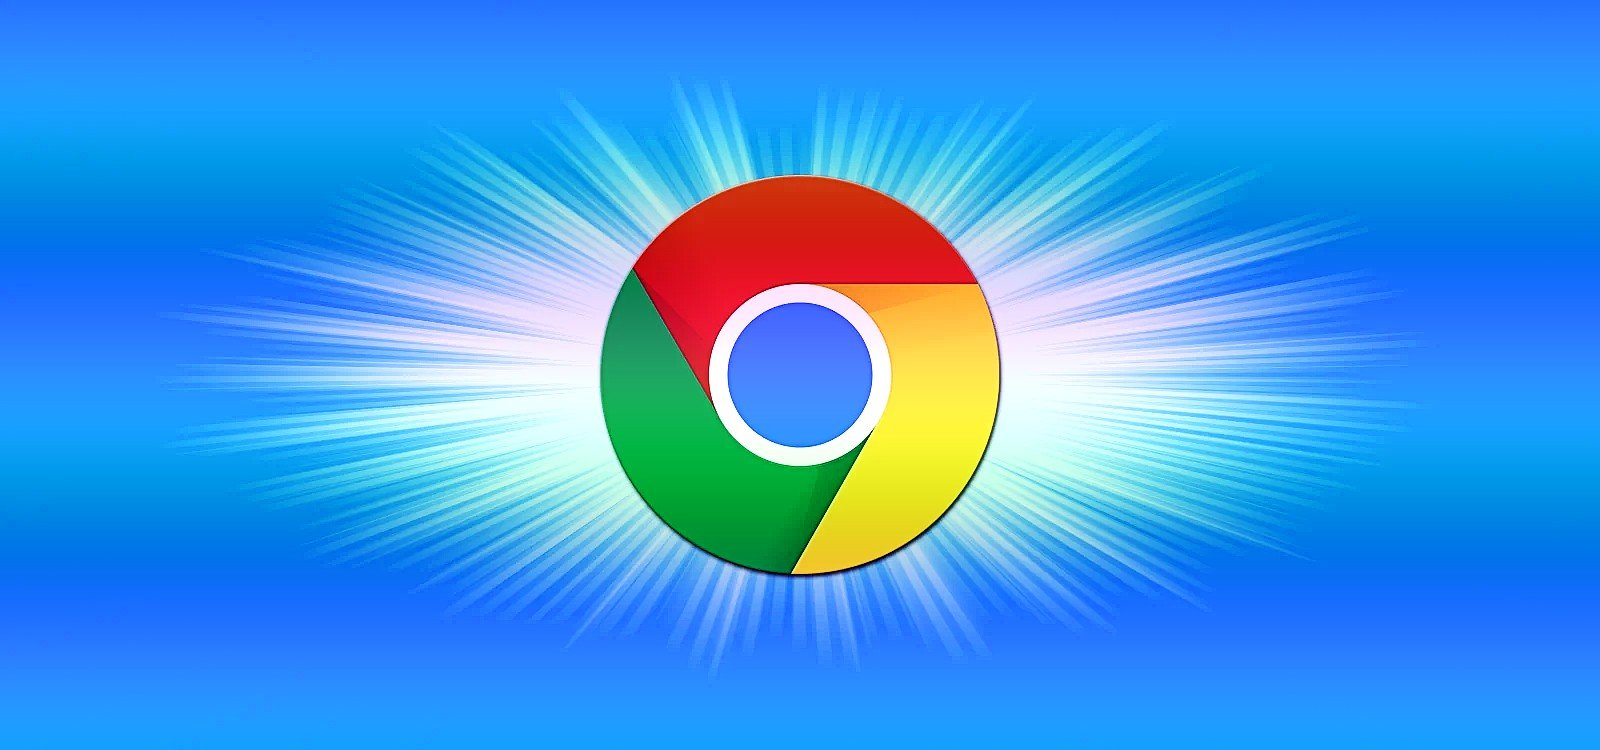 Google Chrome 90 Released With HTTPS As The Default Protocol